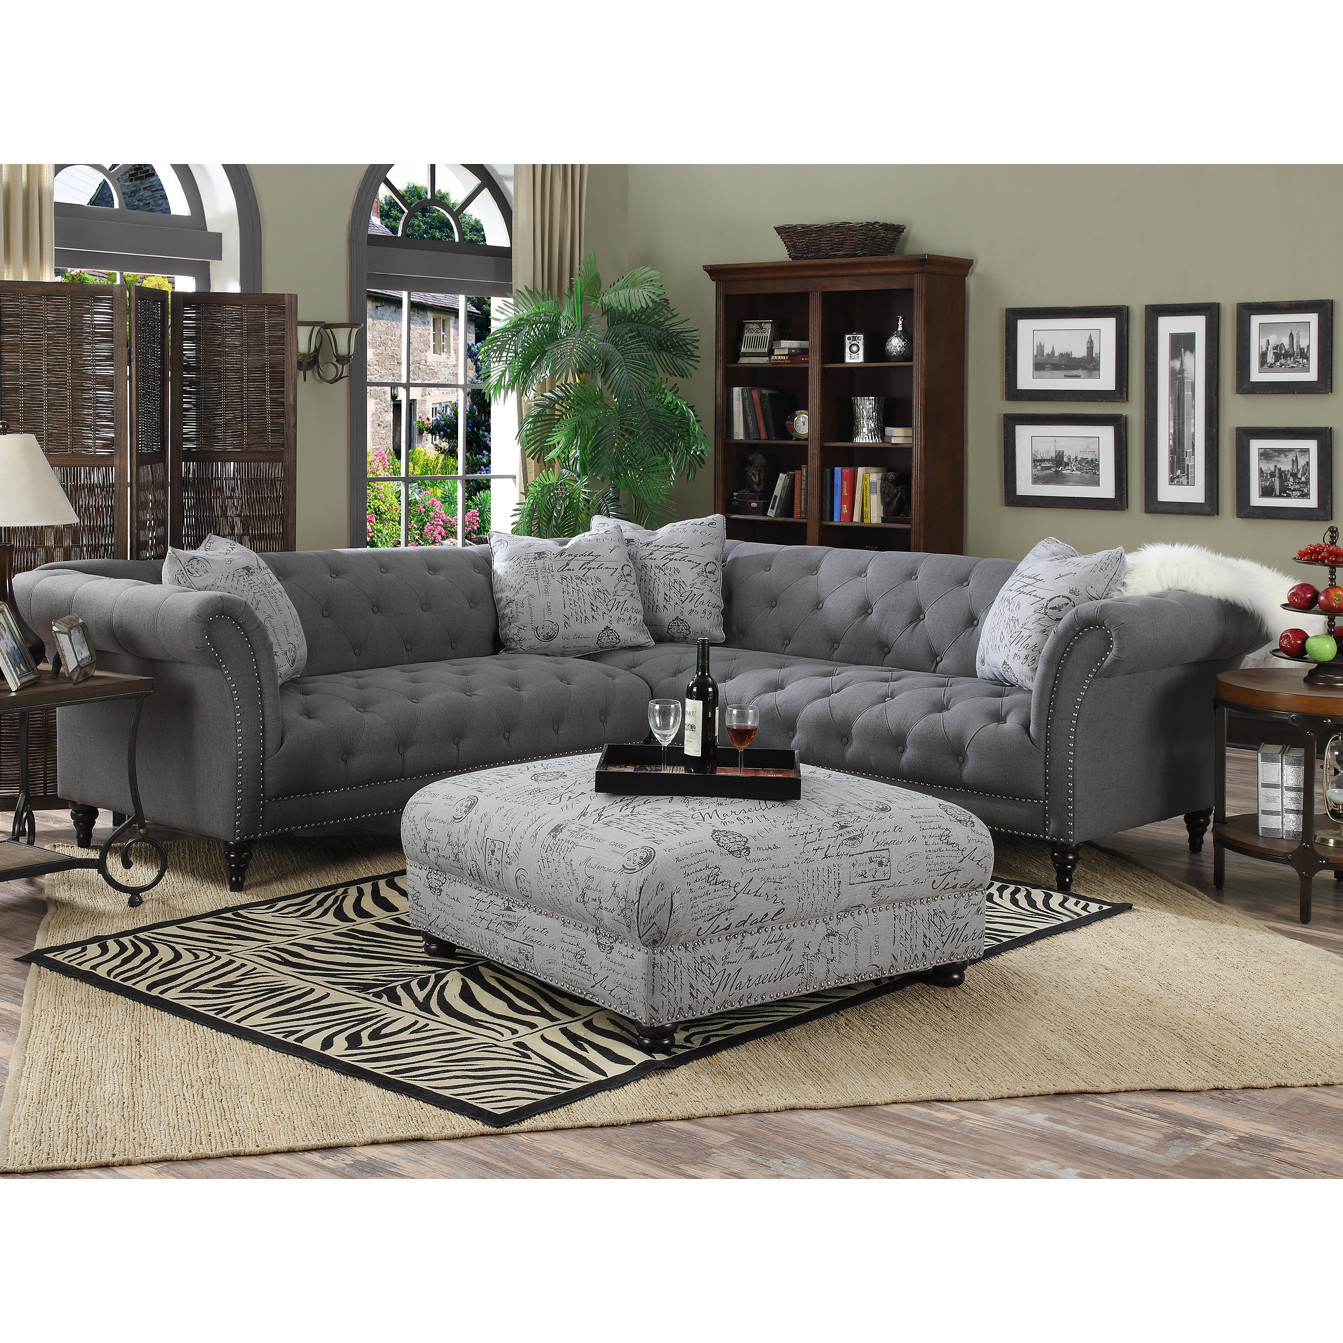 Best ideas about Wayfair Sectional Sofa . Save or Pin Lark Manor Awa Turenne Sectional & Reviews Now.